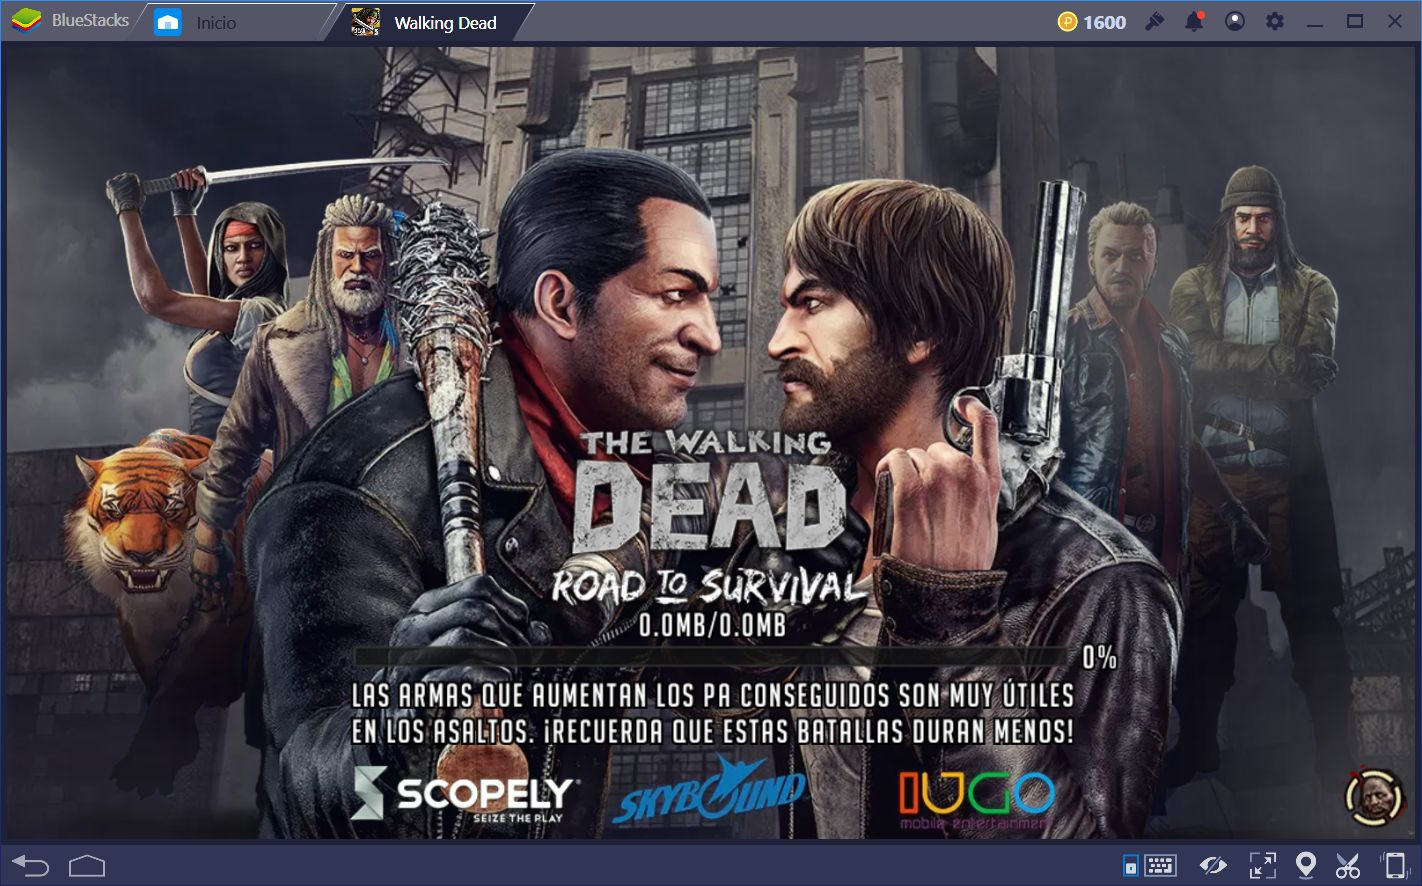 Cómo Administrar tu Pueblo en The Walking Dead: Road to Survival